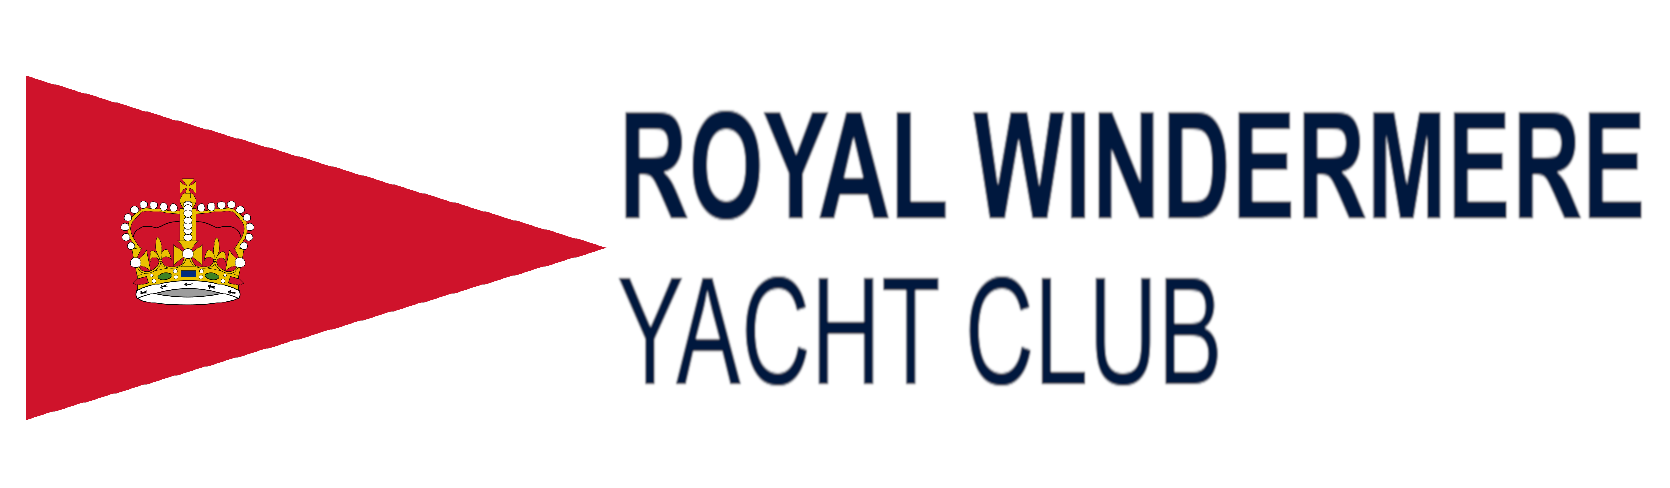 Royal Windermere Yacht Club